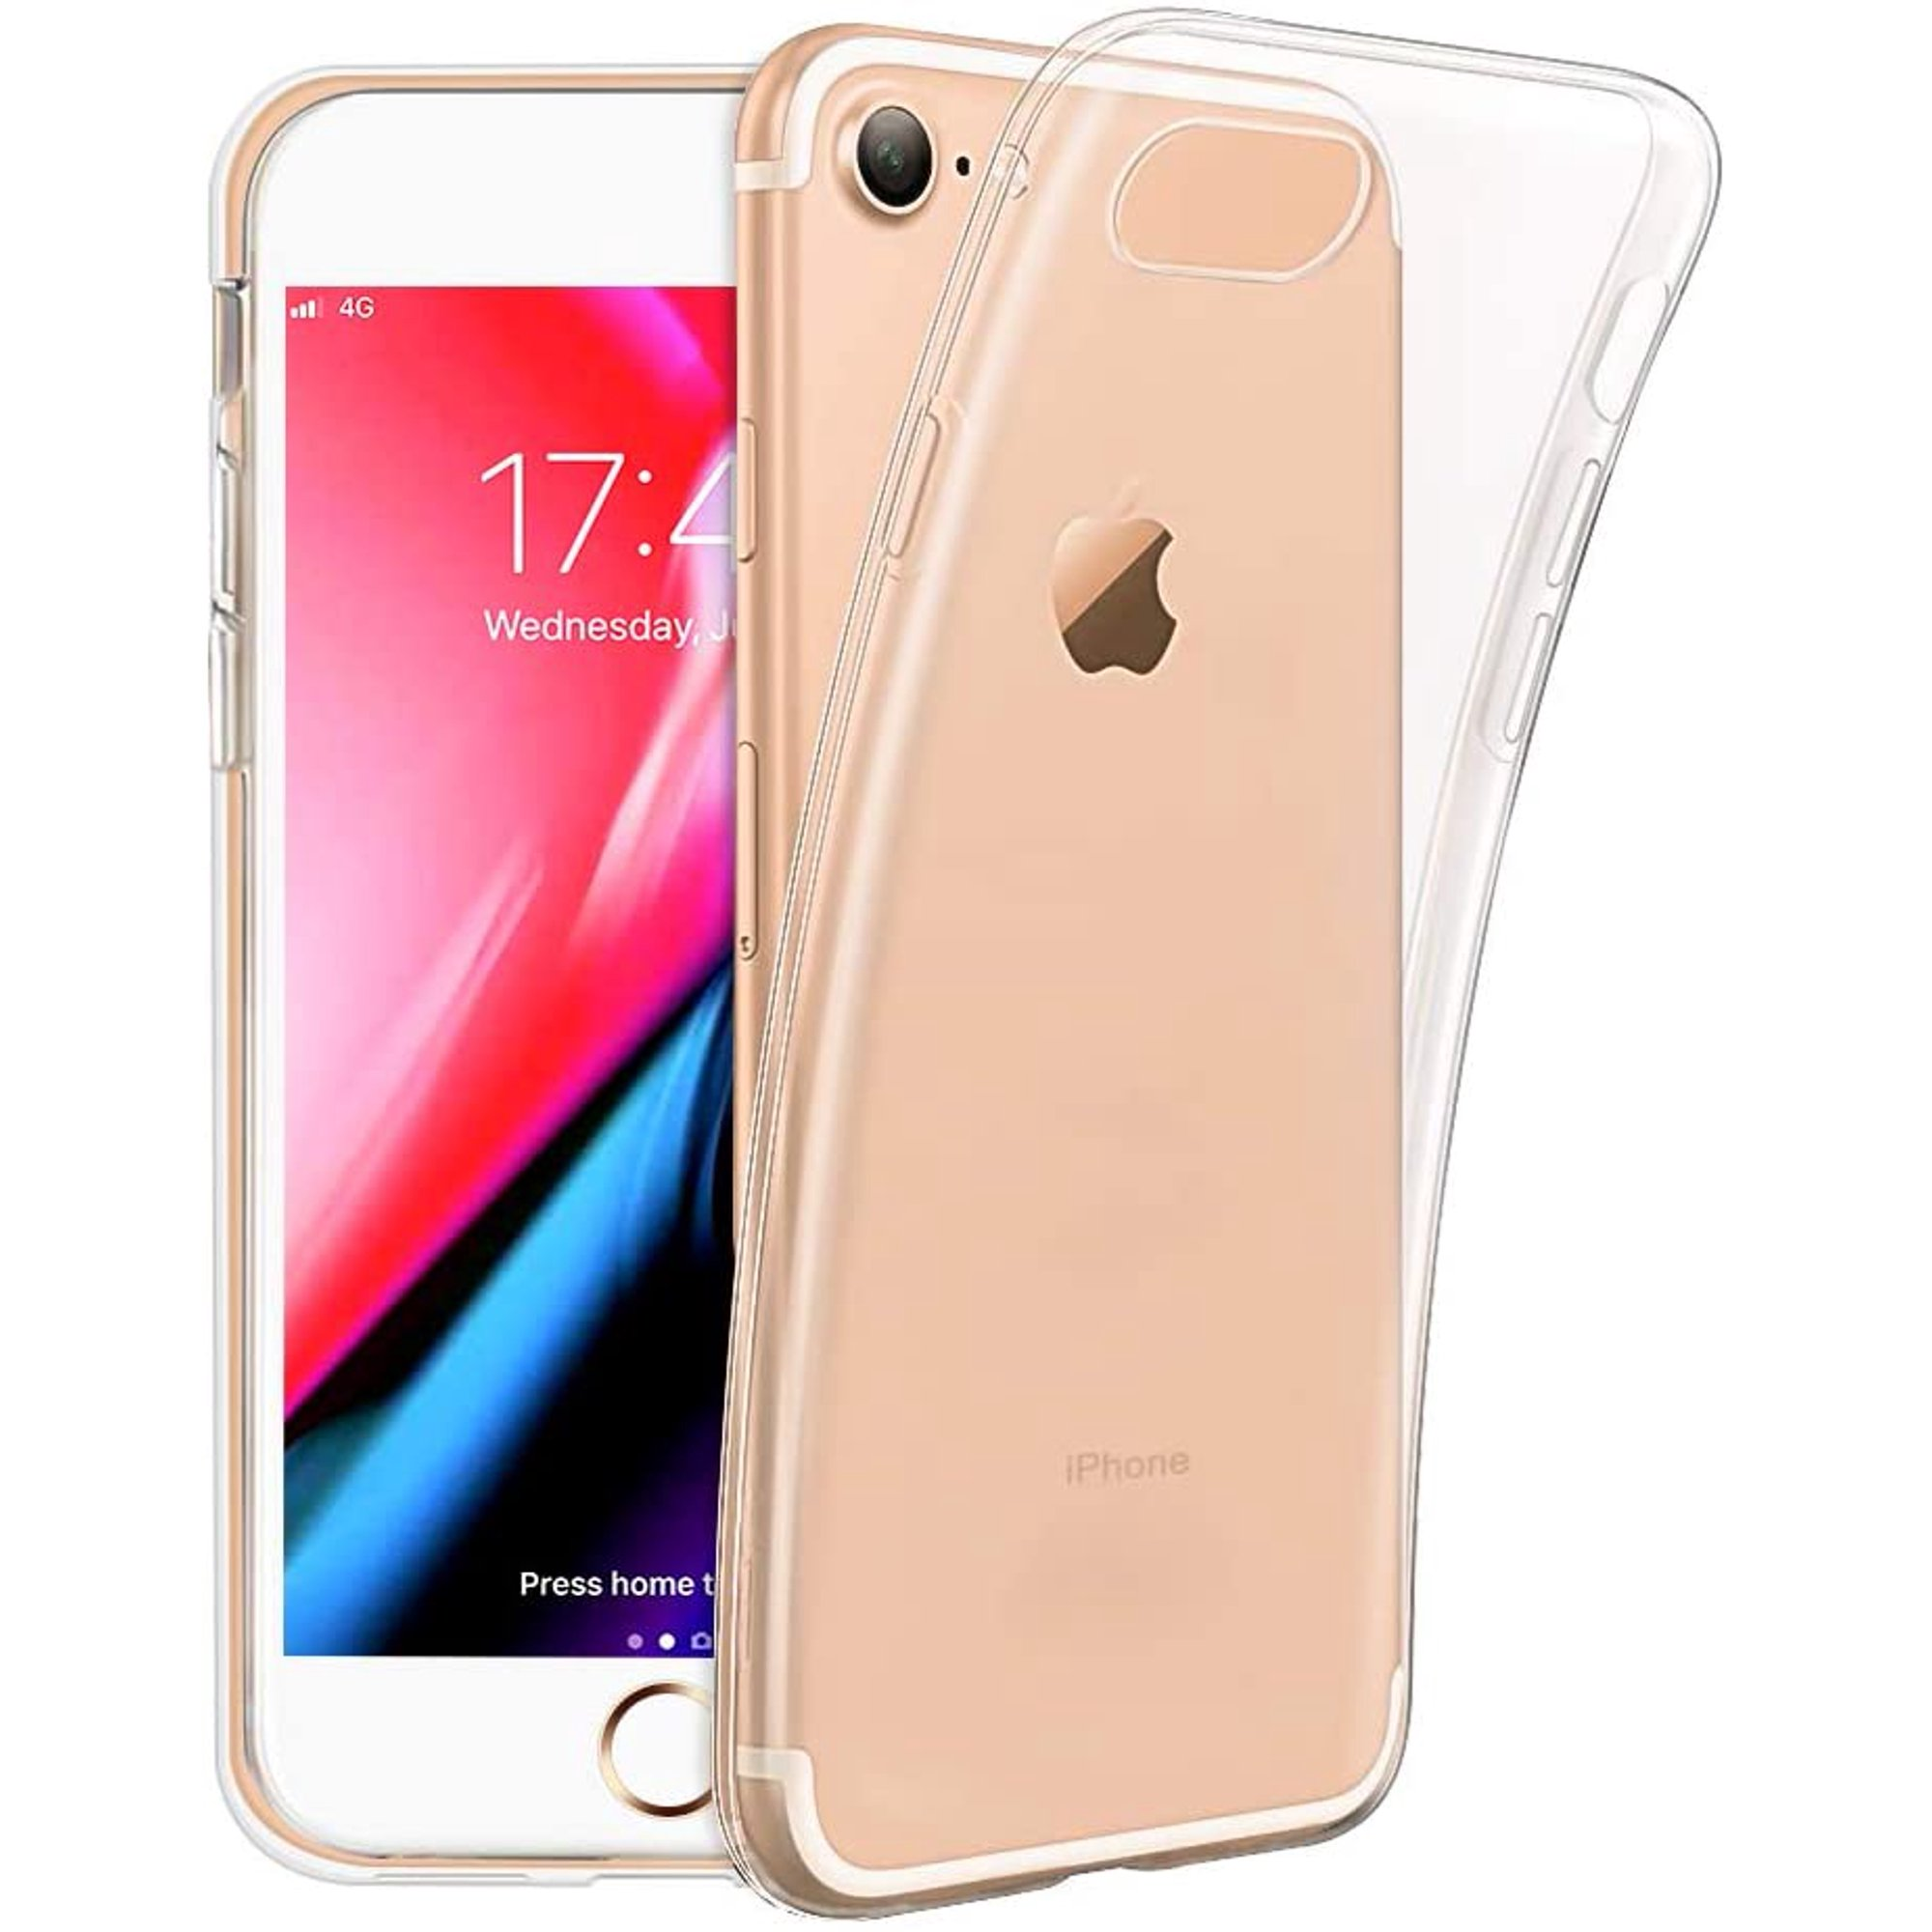 Iphone 8 Mobile Phone Cover, Iphone 7 Cover, Crystal Protective Cover Silicone Ultra Thin Anti-Shock Soft Tpu Bumper Case Anti-Scratch Cover For ...